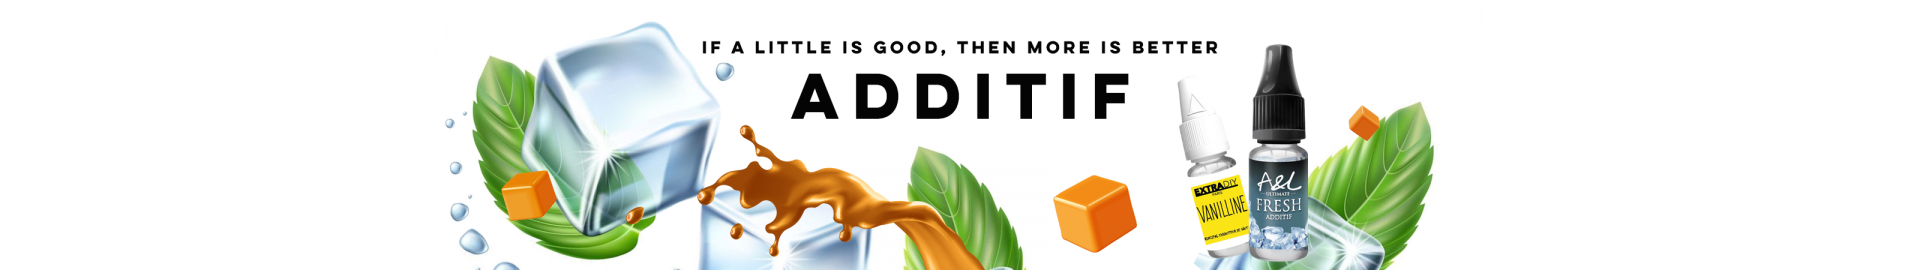 Additives - DIY